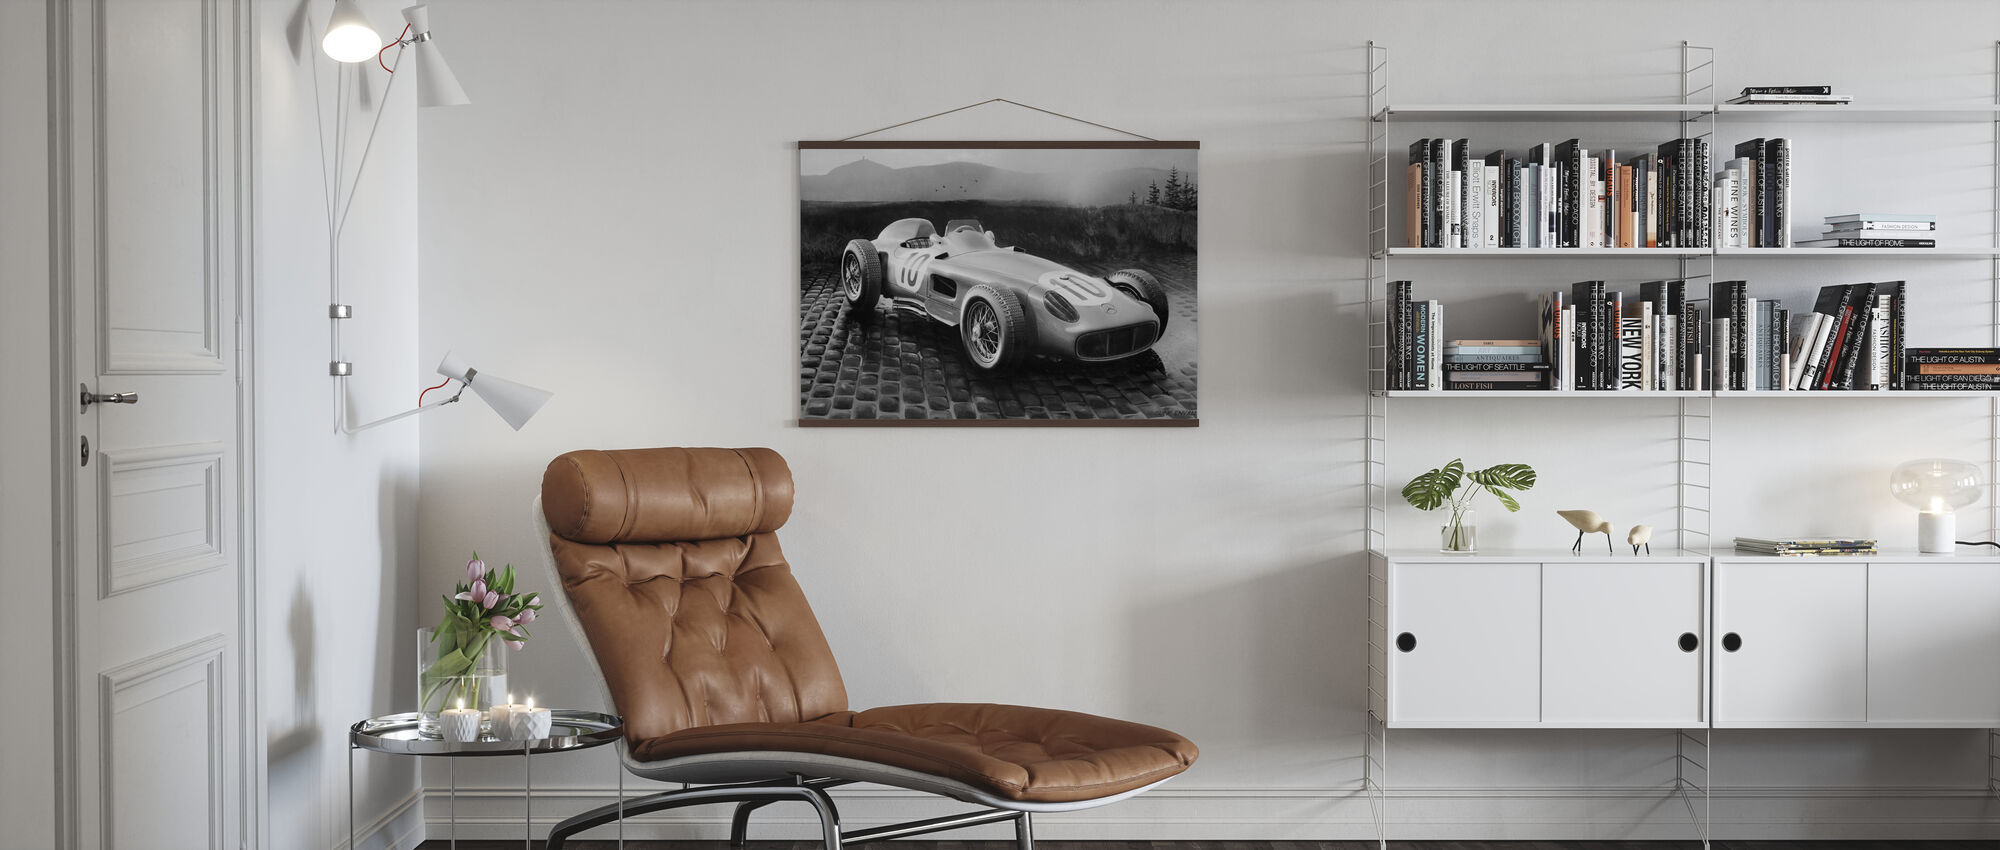 Auto 1954 BW - Poster - Woonkamer